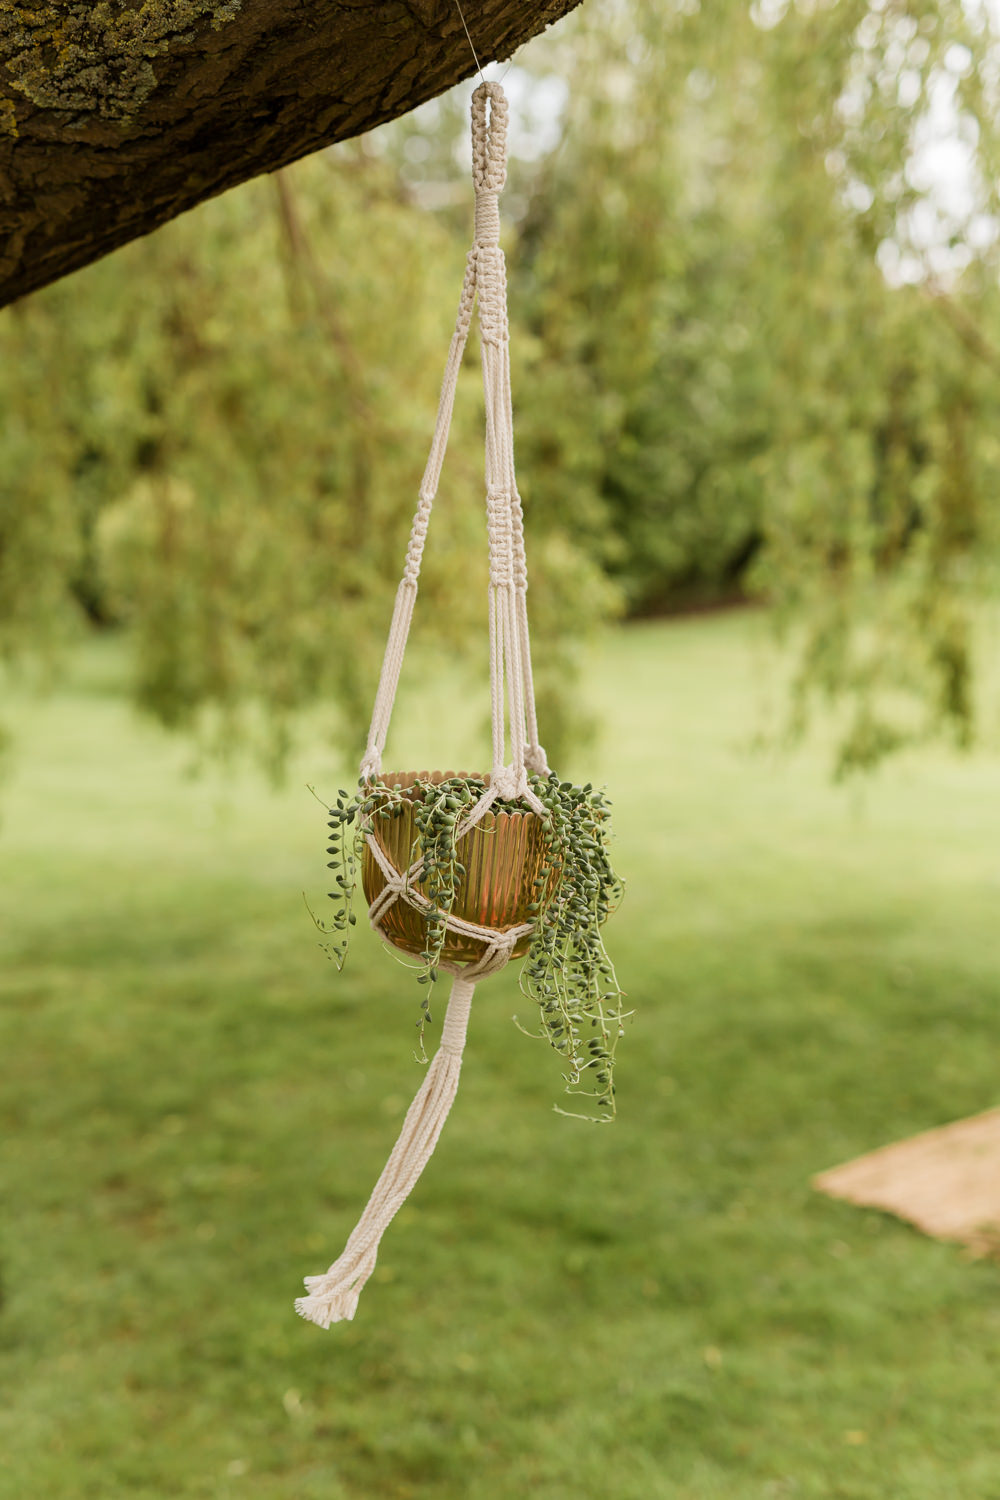 Hanging Suspended Pot Plant Tropical Boho Countryside Wedding Ideas Sarah Brookes Photography